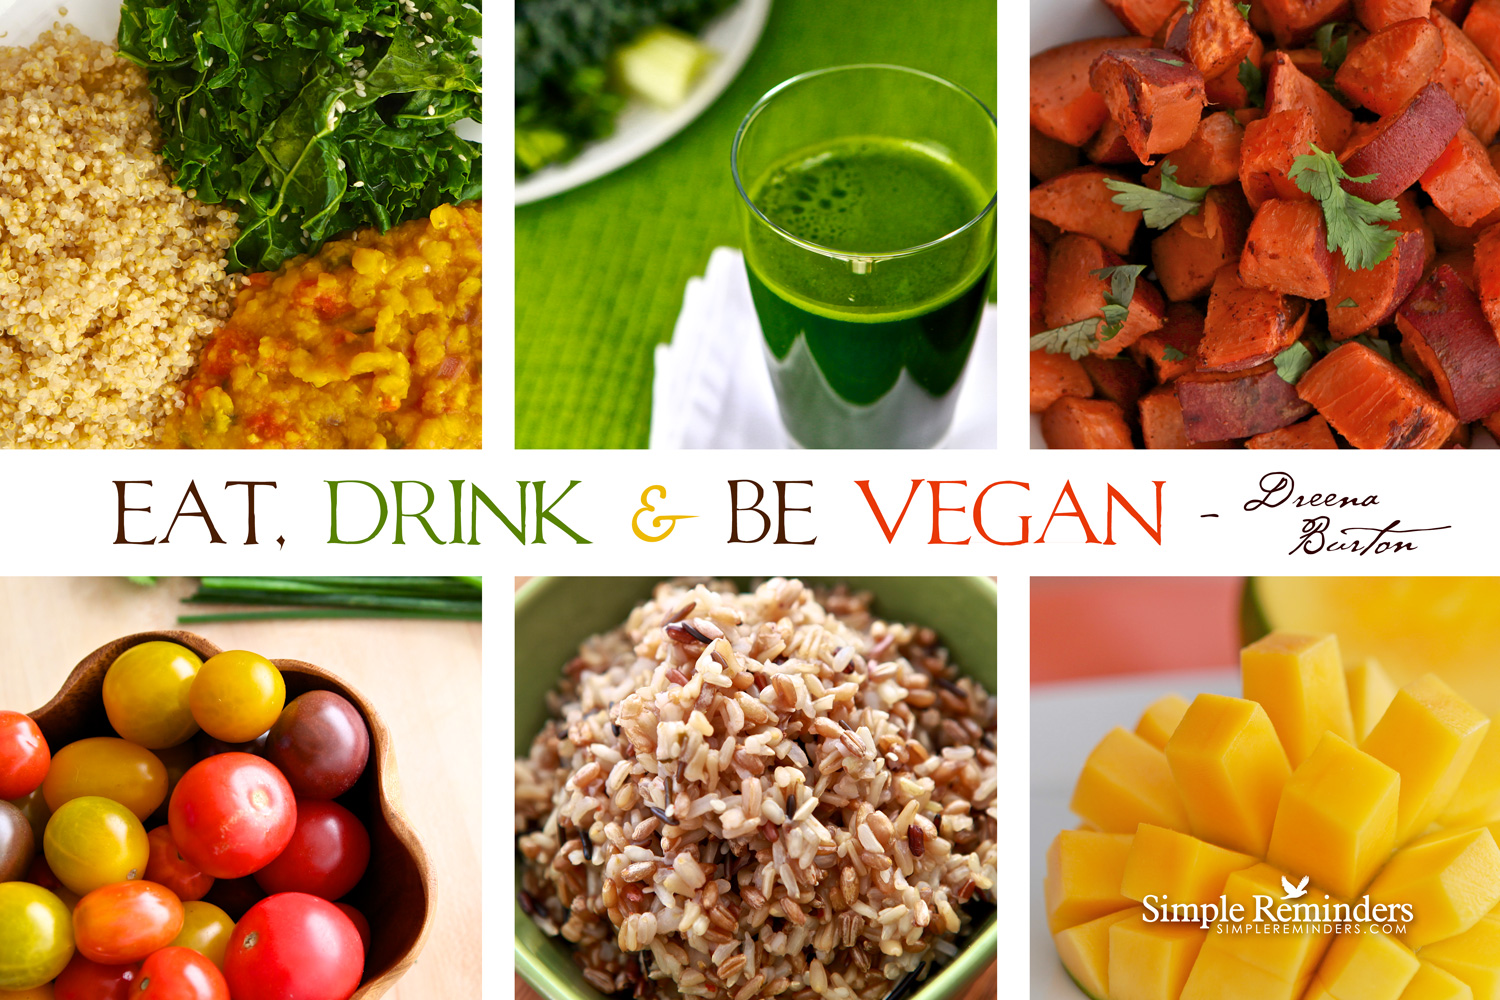 a vegan lifestyle Feeling pressure or confusion as you go vegan these seven simple tips for transitioning to a vegan lifestyle may help to boost your confidence and fun.